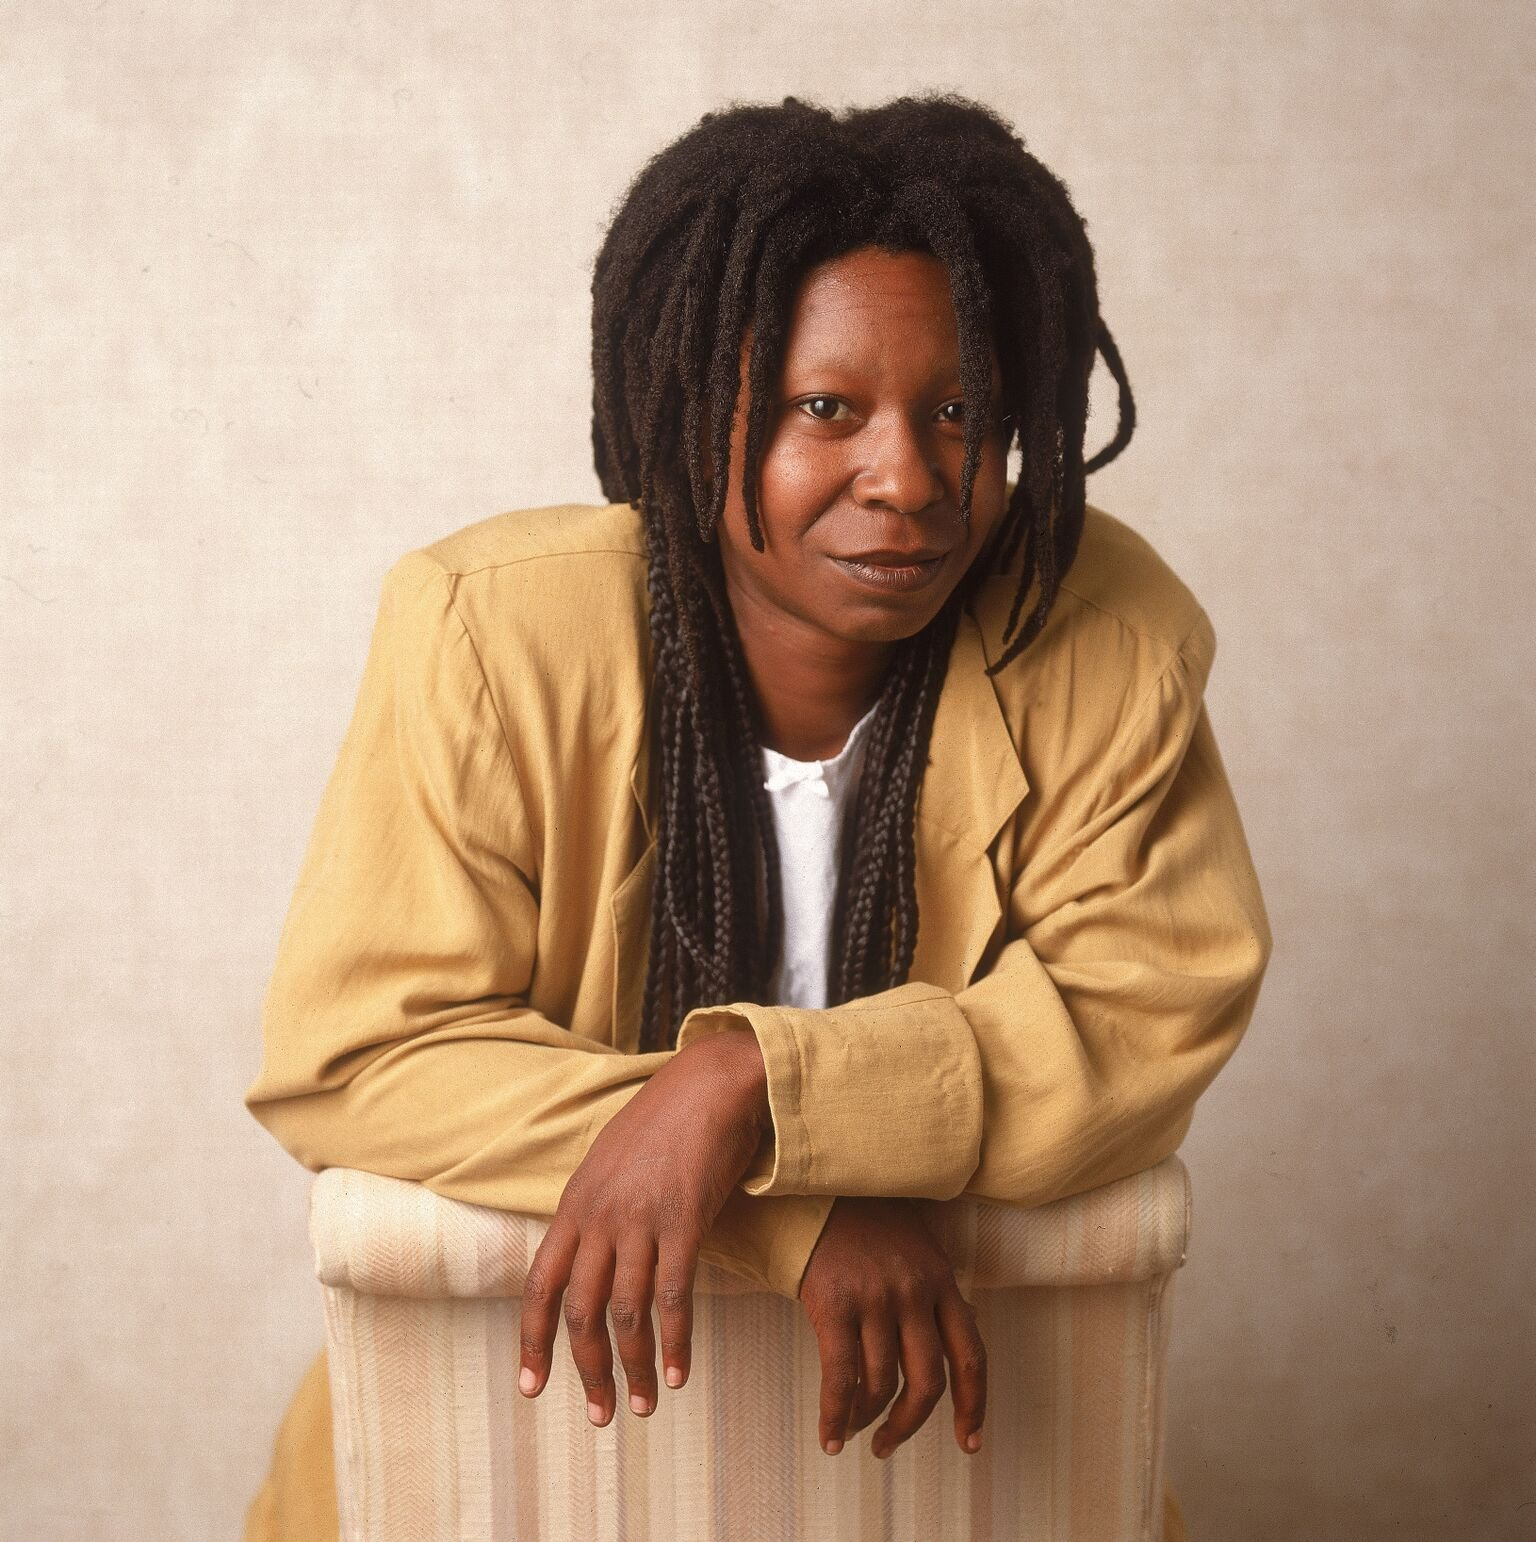 Portrait of Whoopi Goldberg in 1988 | Getty Images